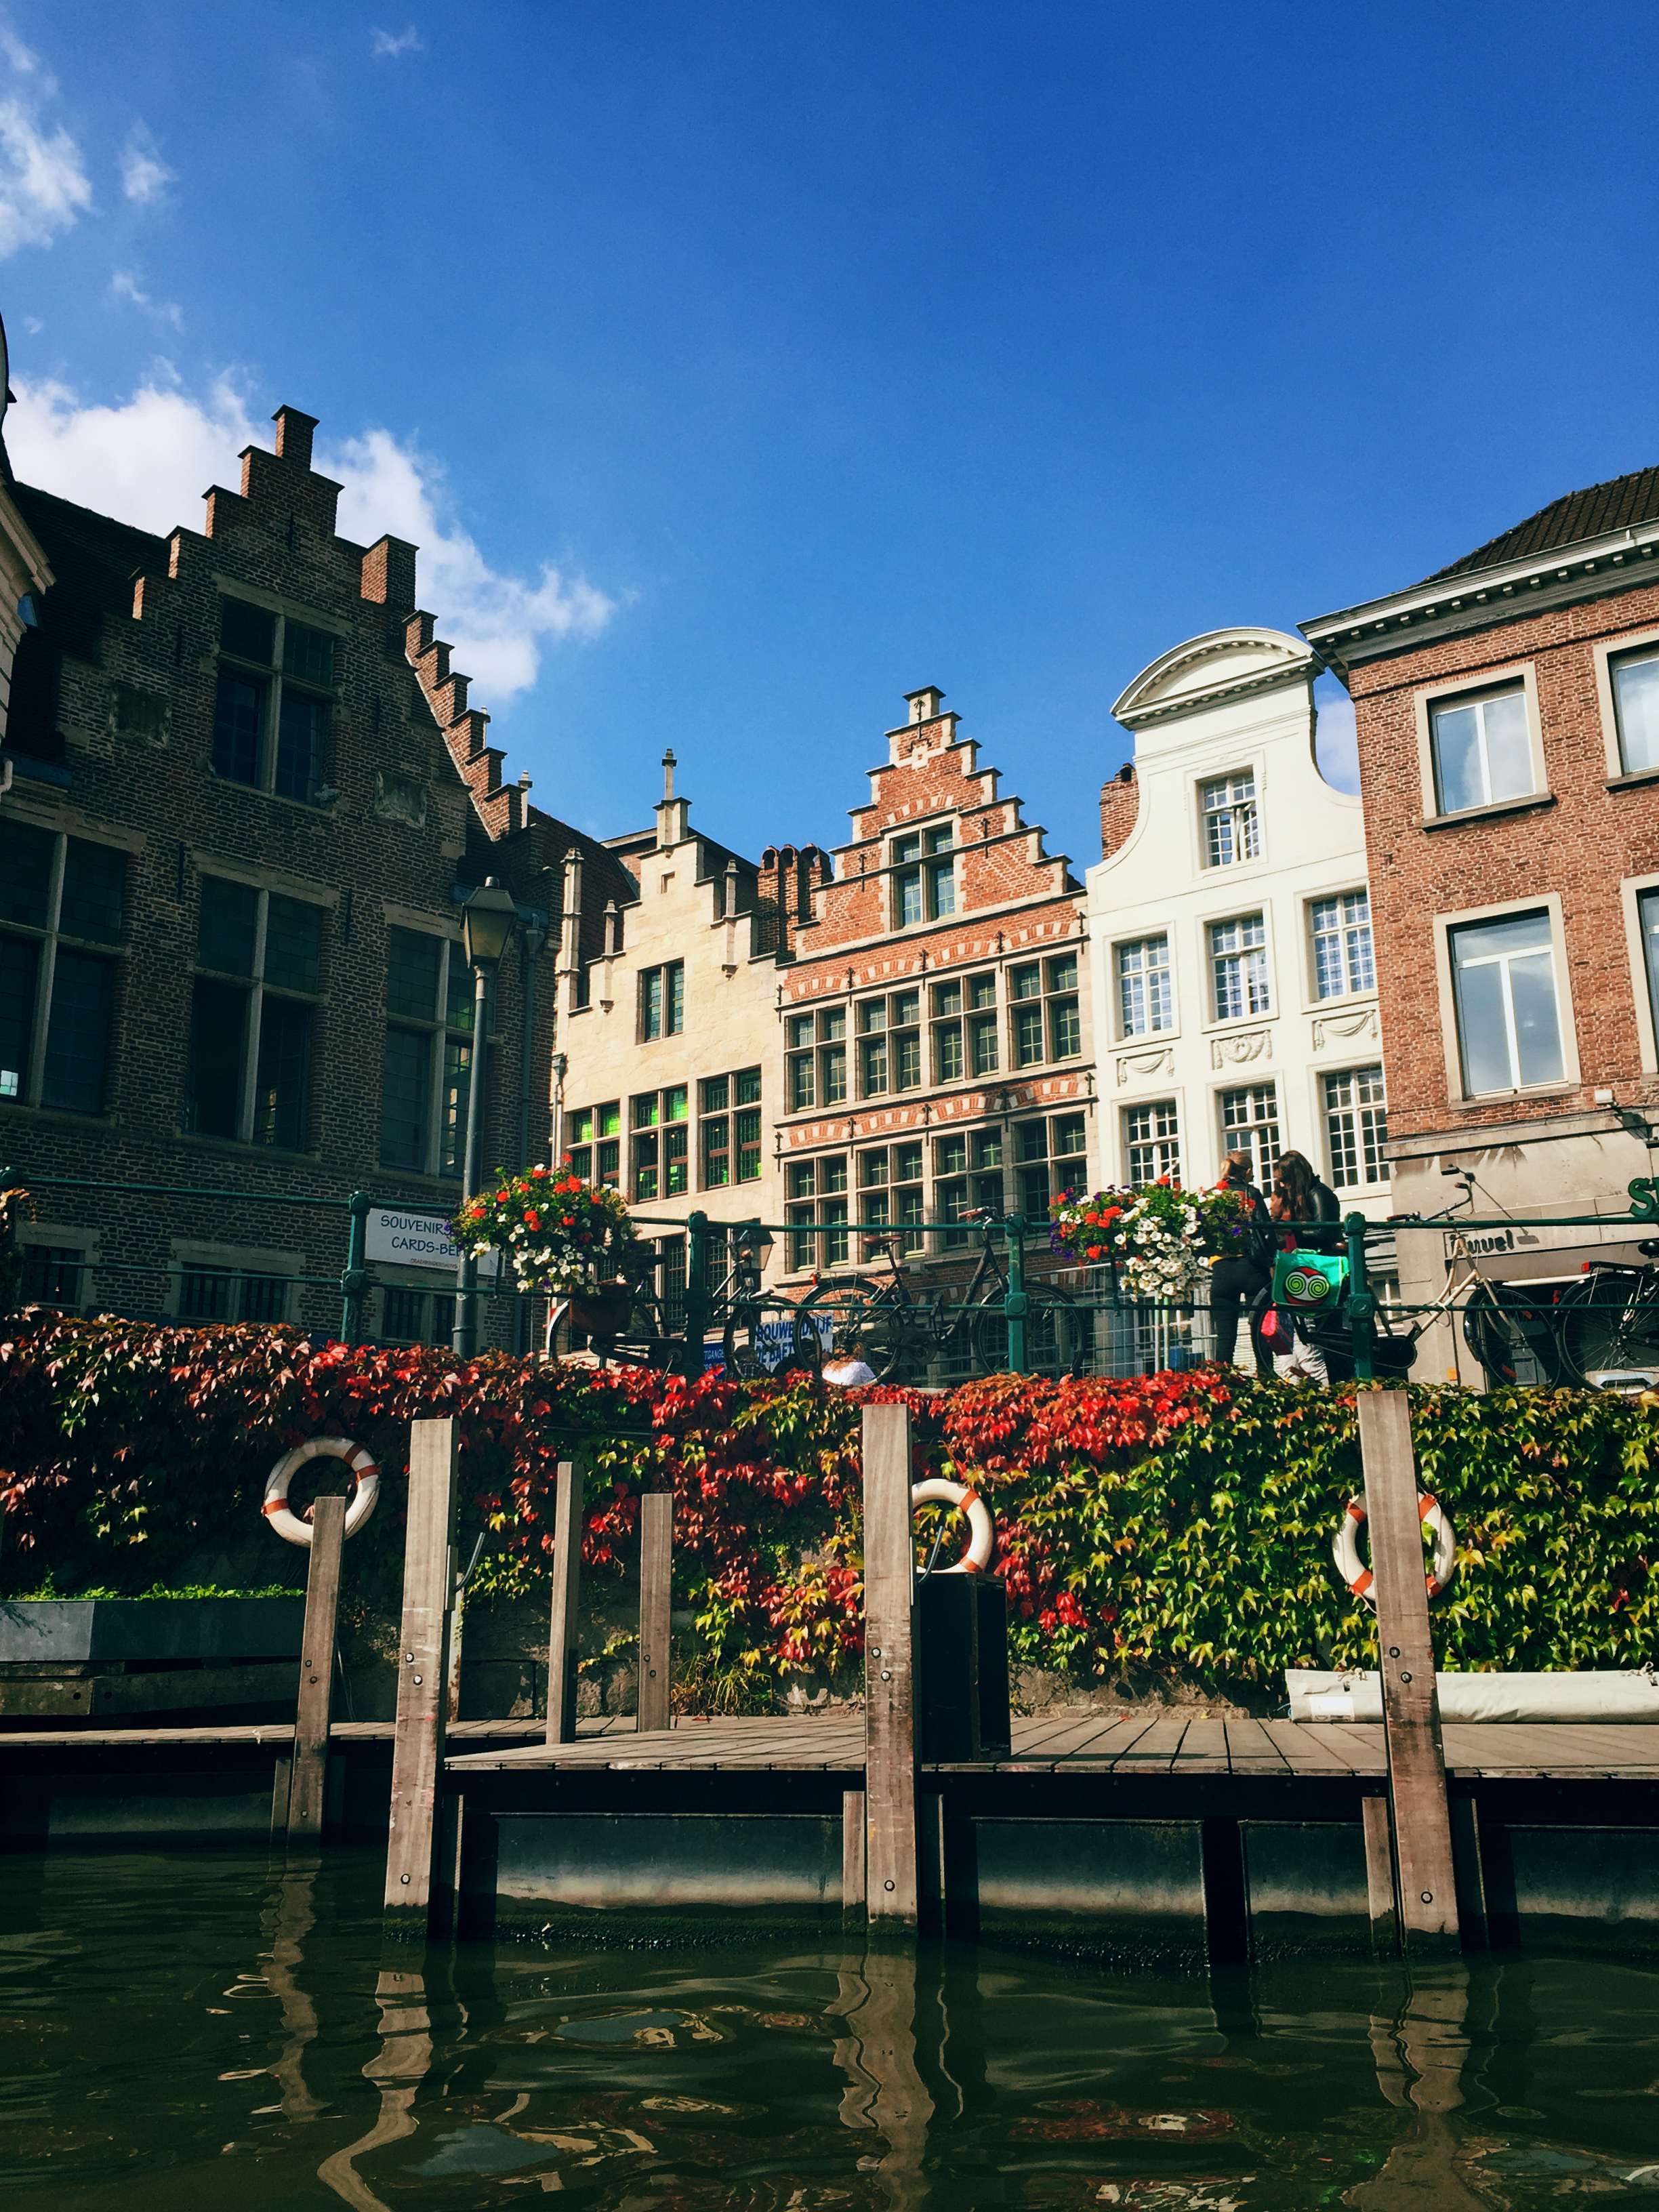 Absolutely love the traditional Belgian architecture